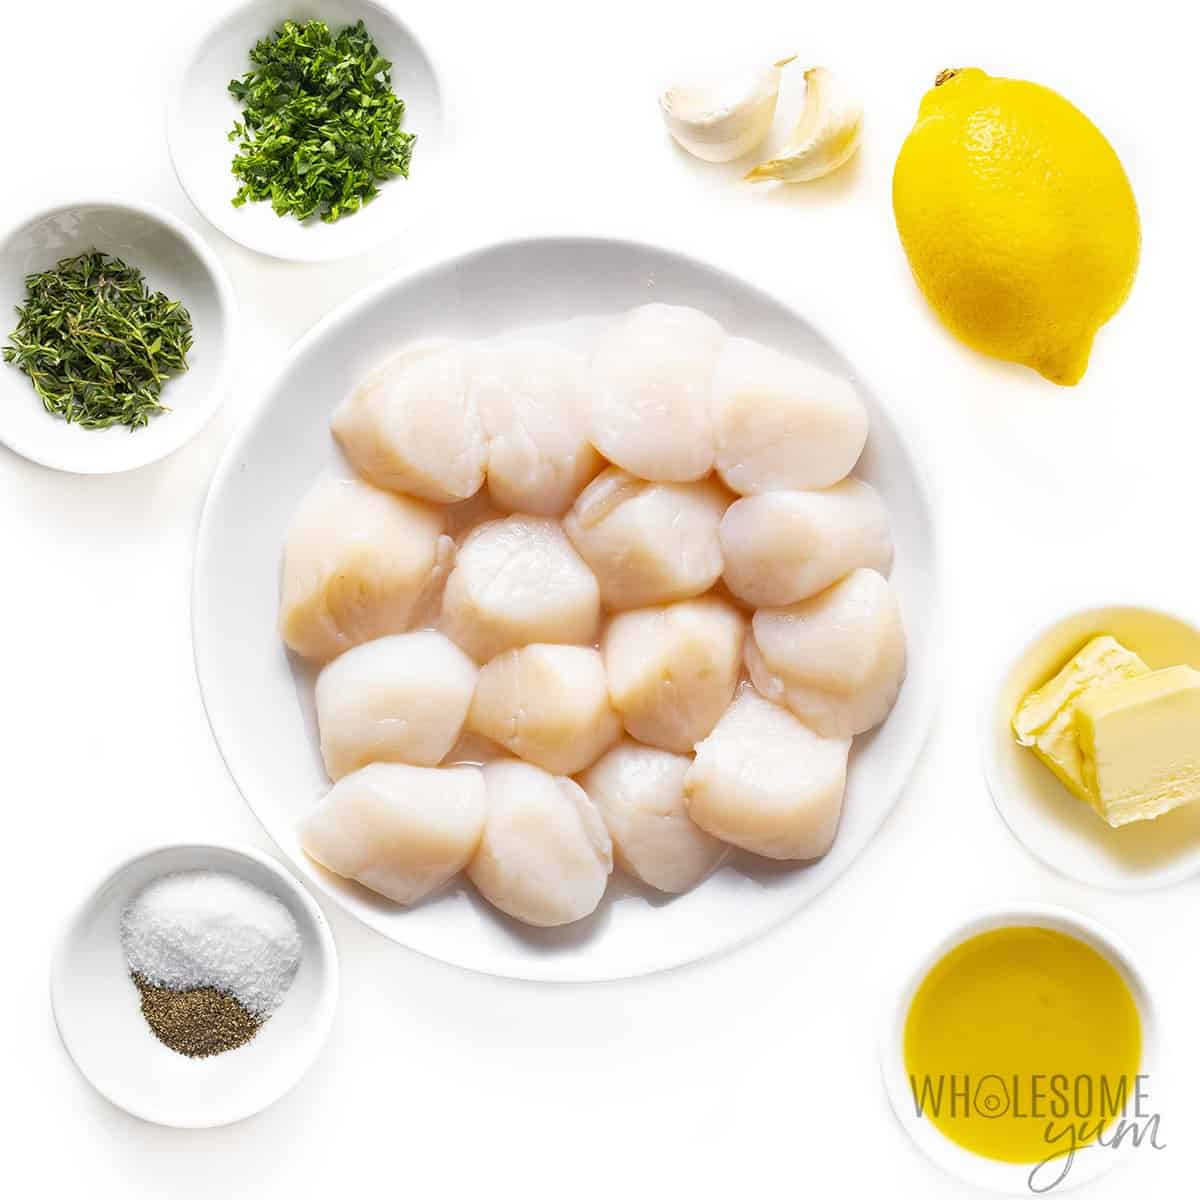 Ingredients to make seared scallops recipe